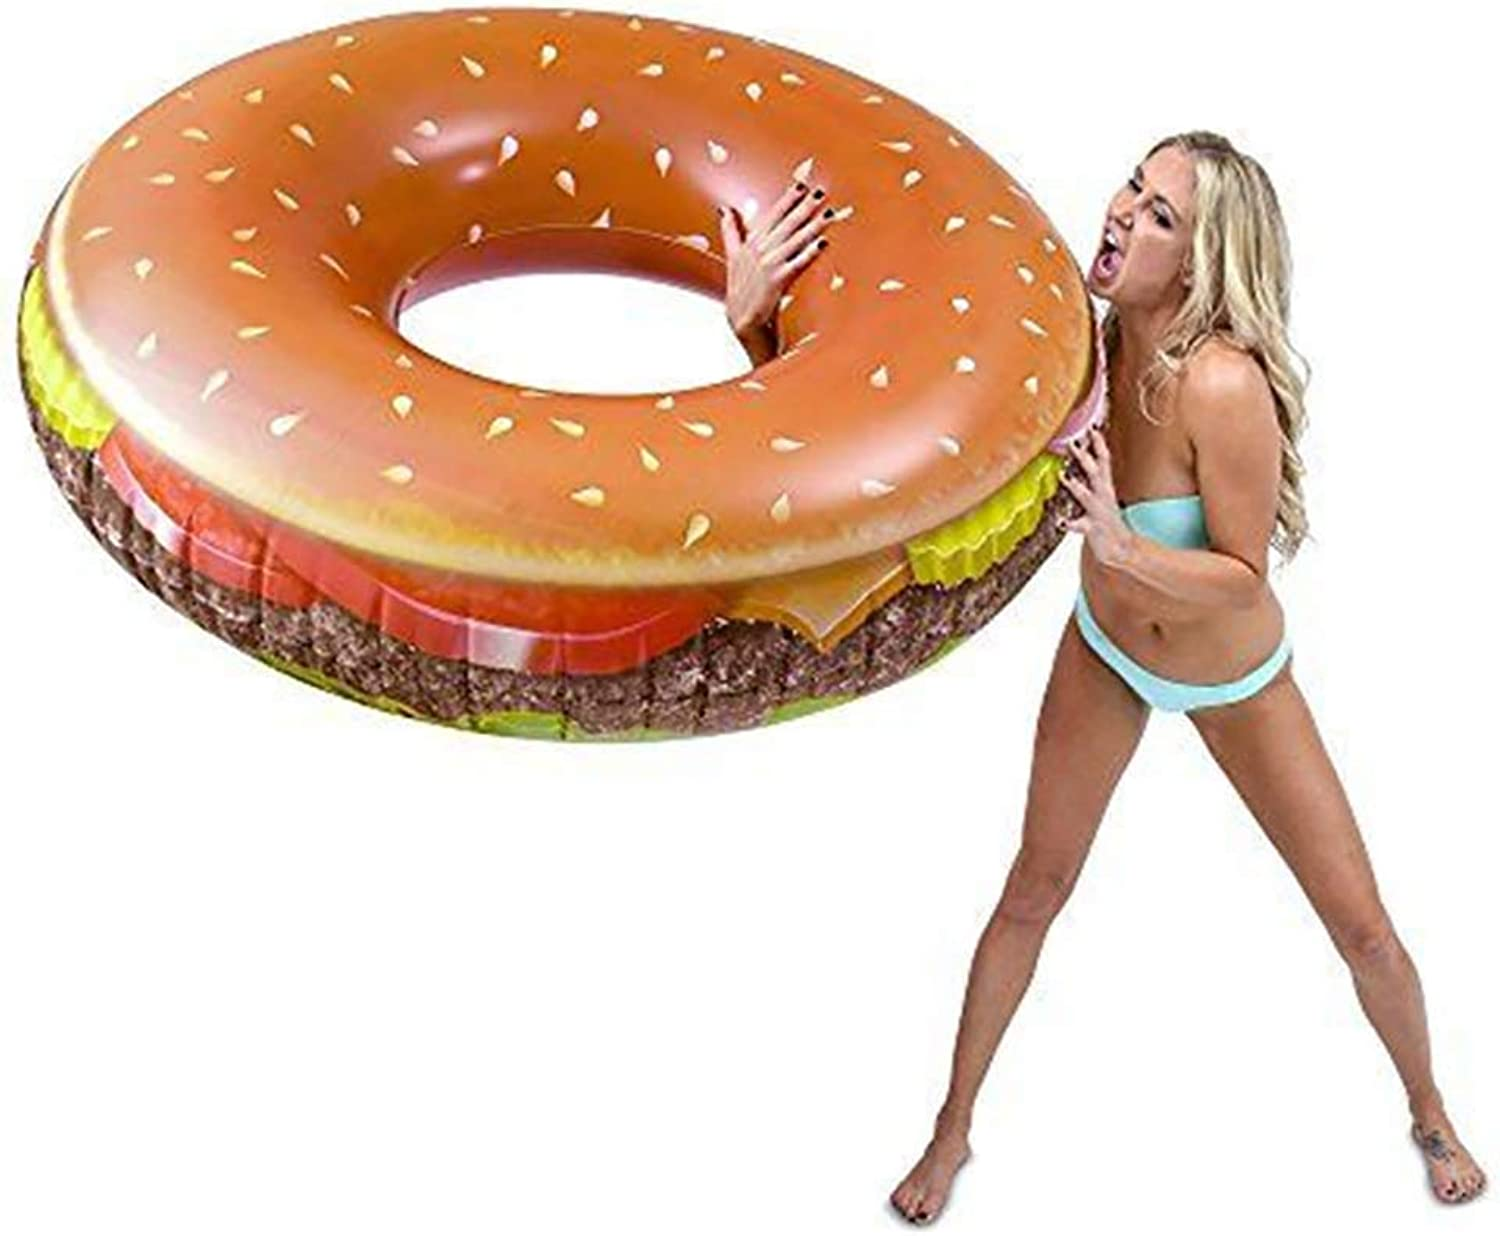 Pool Float Ball, Burger Inflatable Floating Bed Toy (110 x 35 cm)